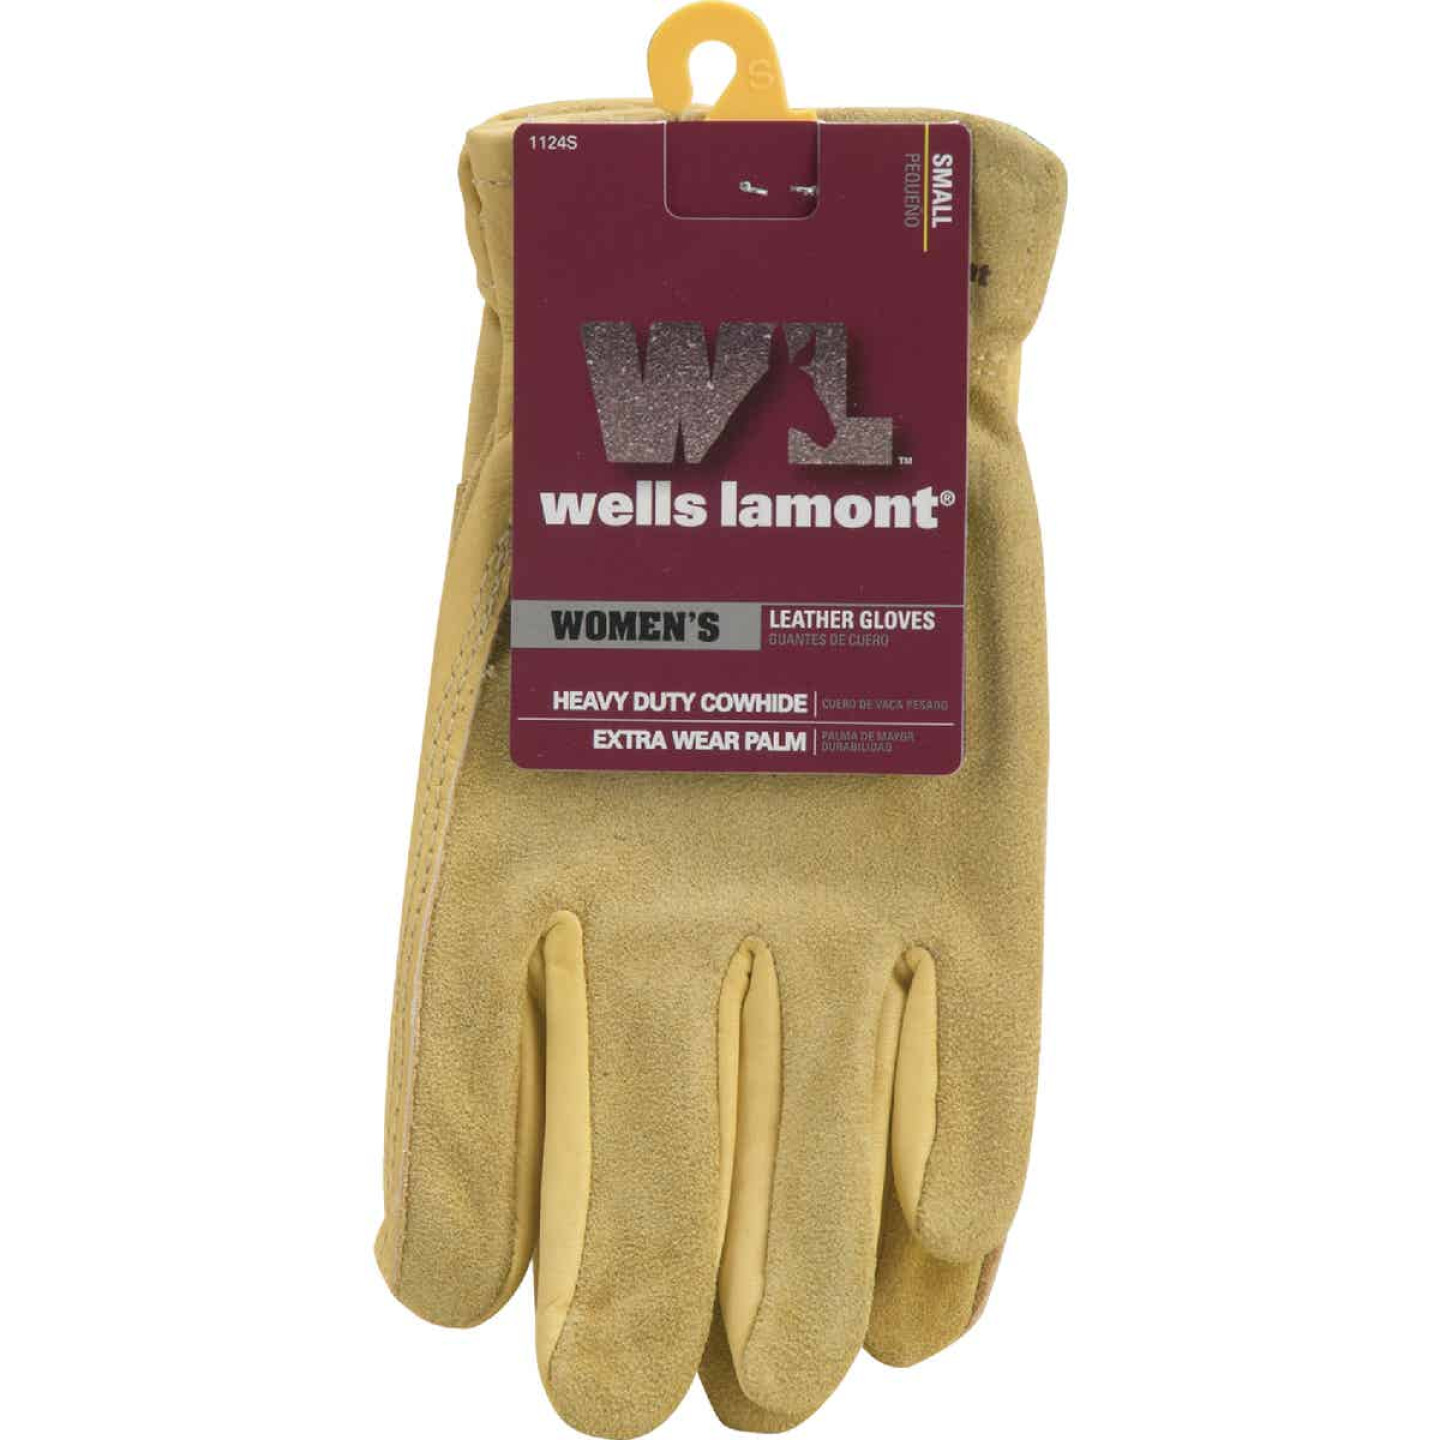 Wells Lamont Women's Small Grain Cowhide Leather Work Glove Image 2